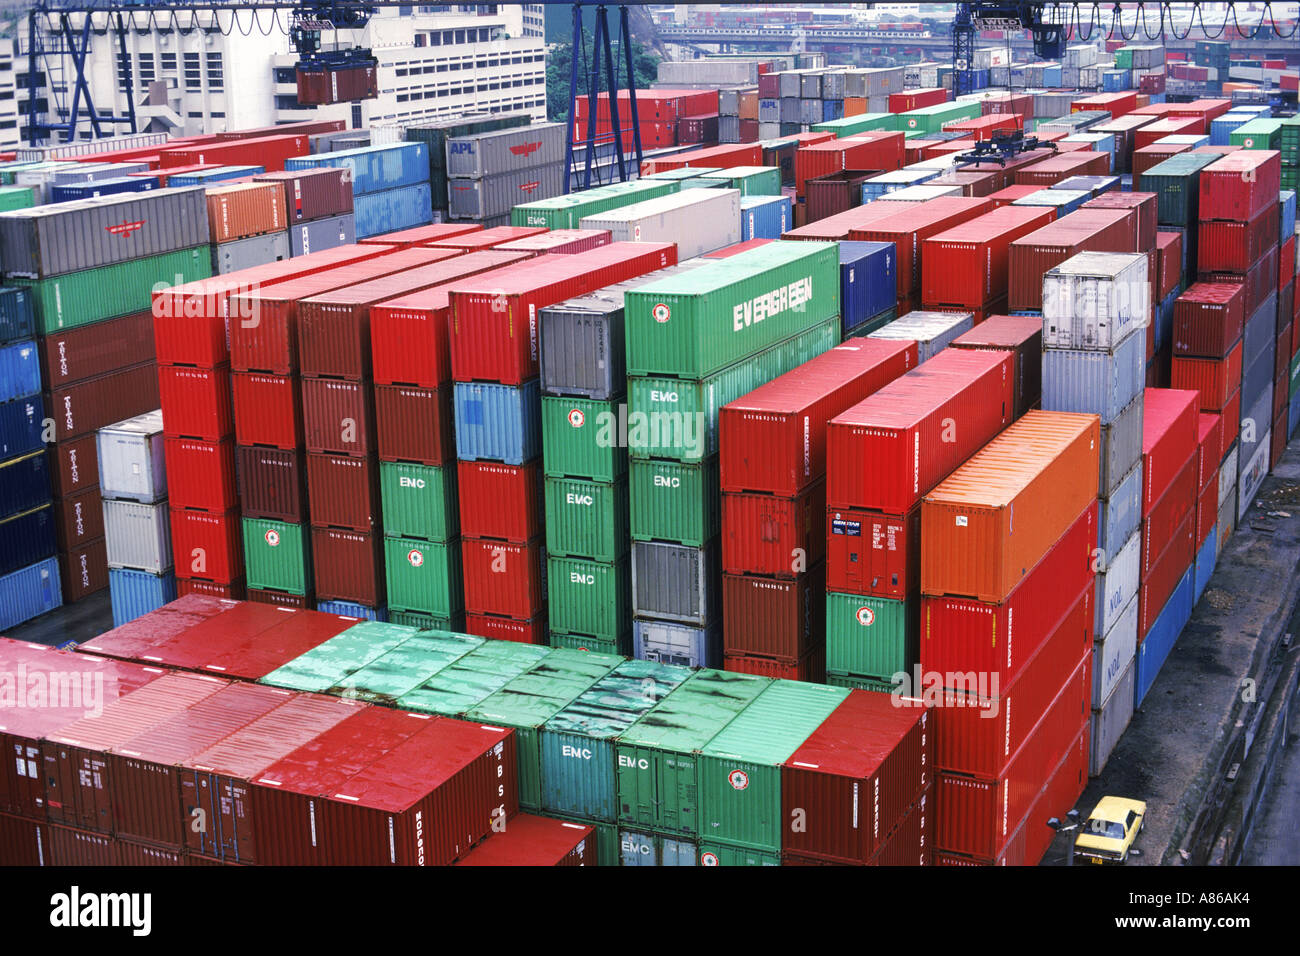 Cargo containers stacked in Singapore Harbor - Stock Image